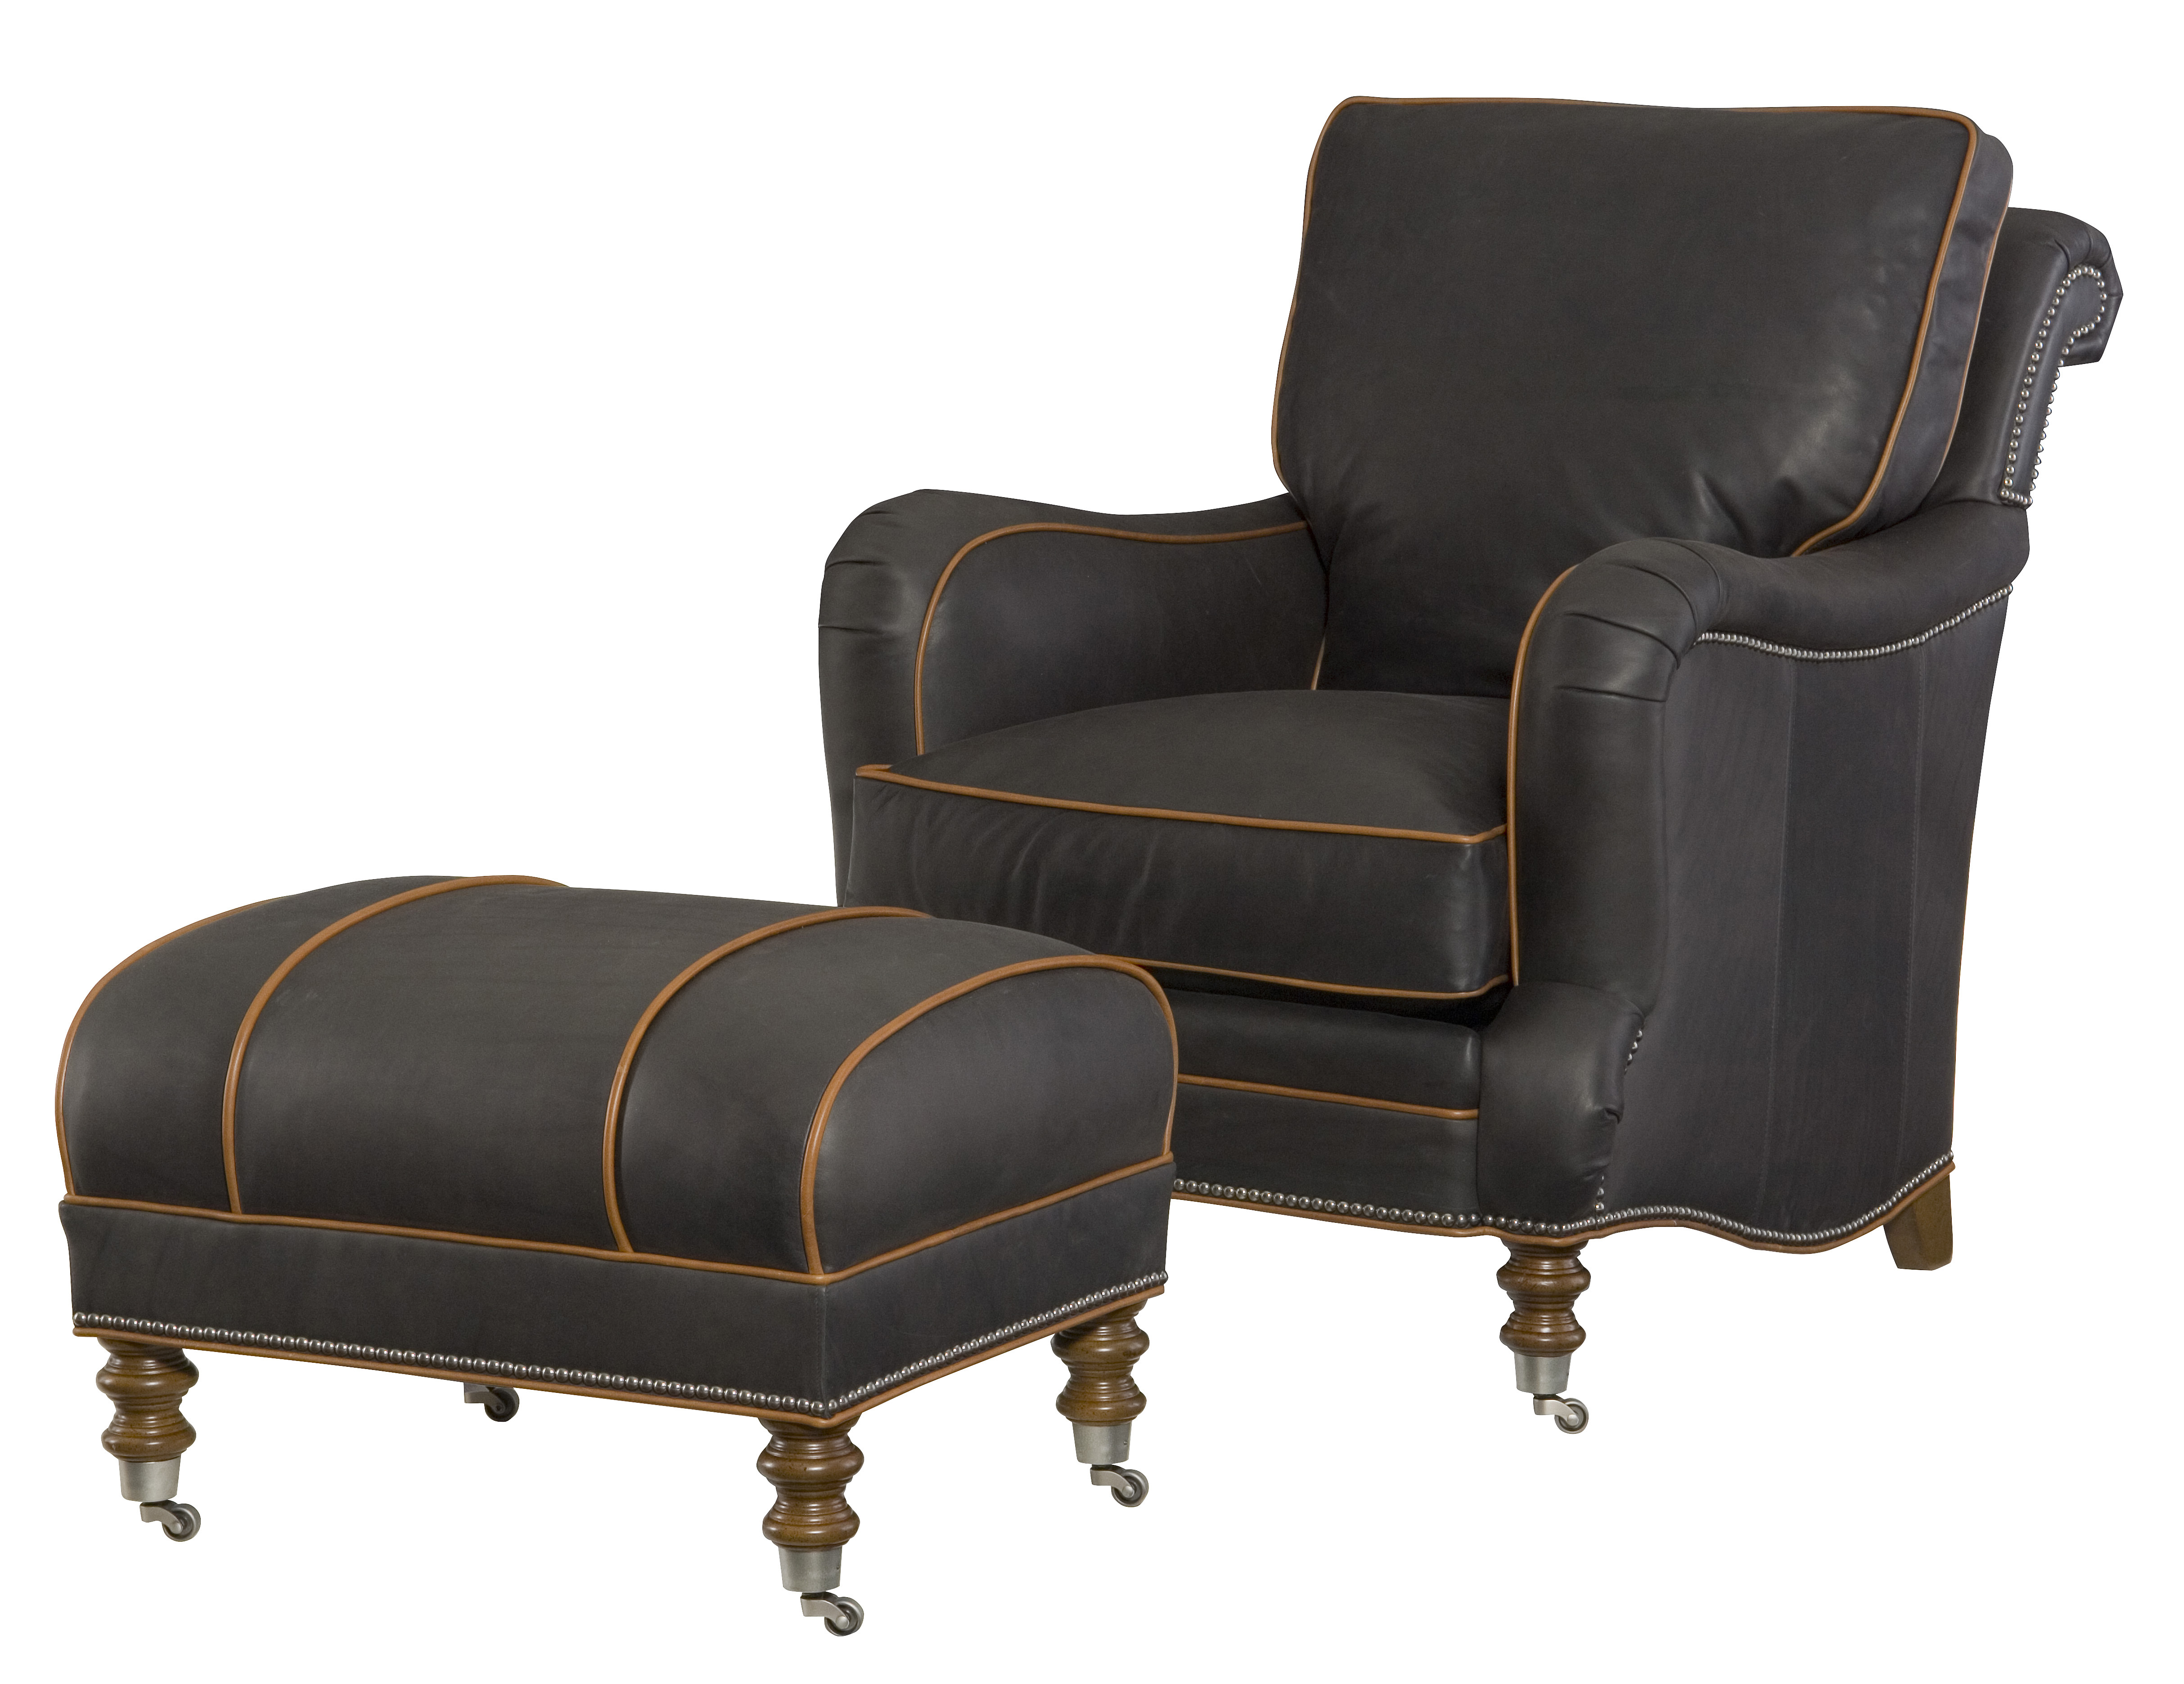 Wesley Hall Furniture Hickory NC PRODUCT PAGE L8038 80 SOFA